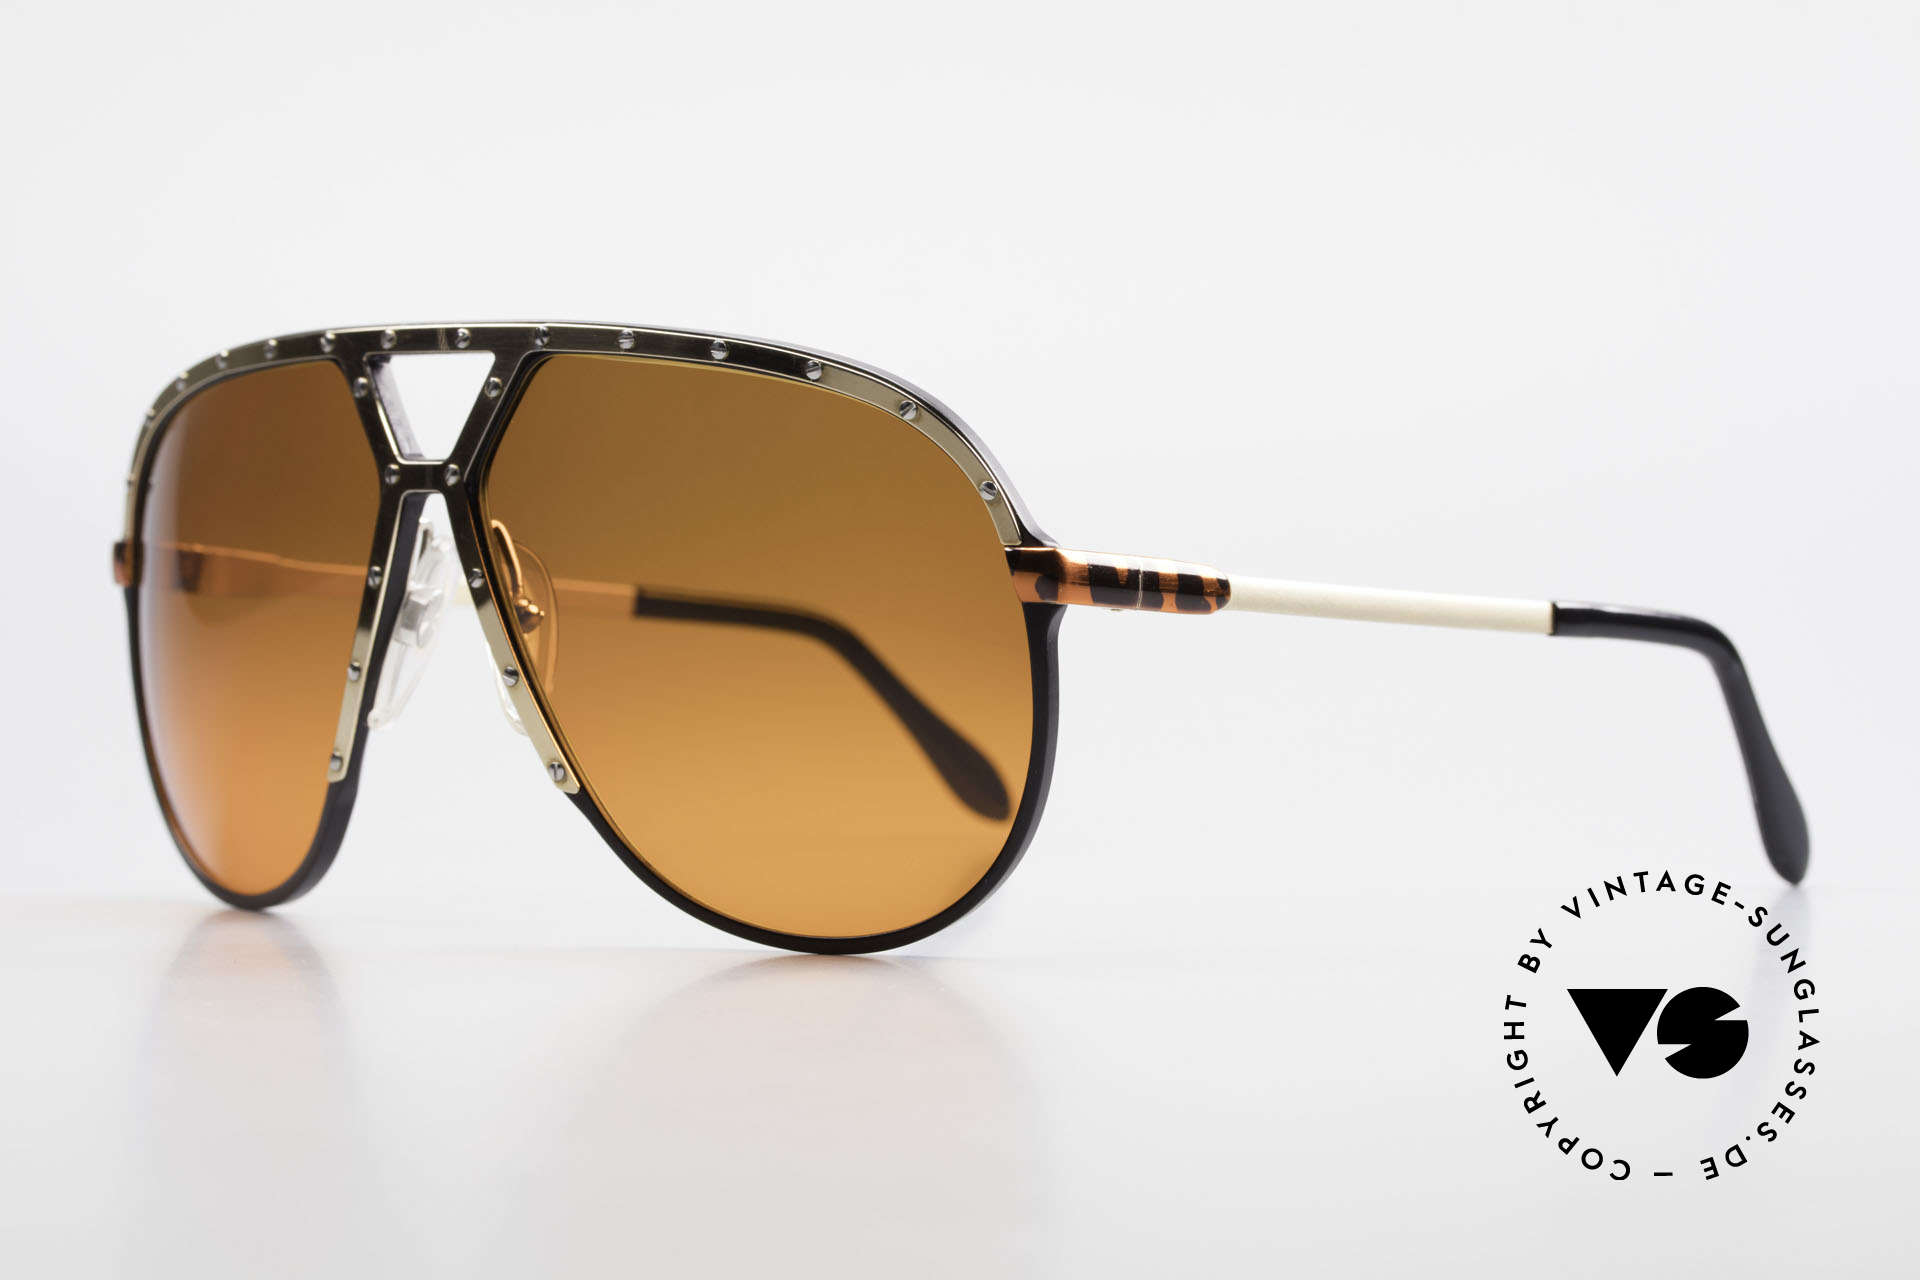 Alpina M1 80s Shades Customized Edition, with customized orange sun lenses; one of a kind, Made for Men